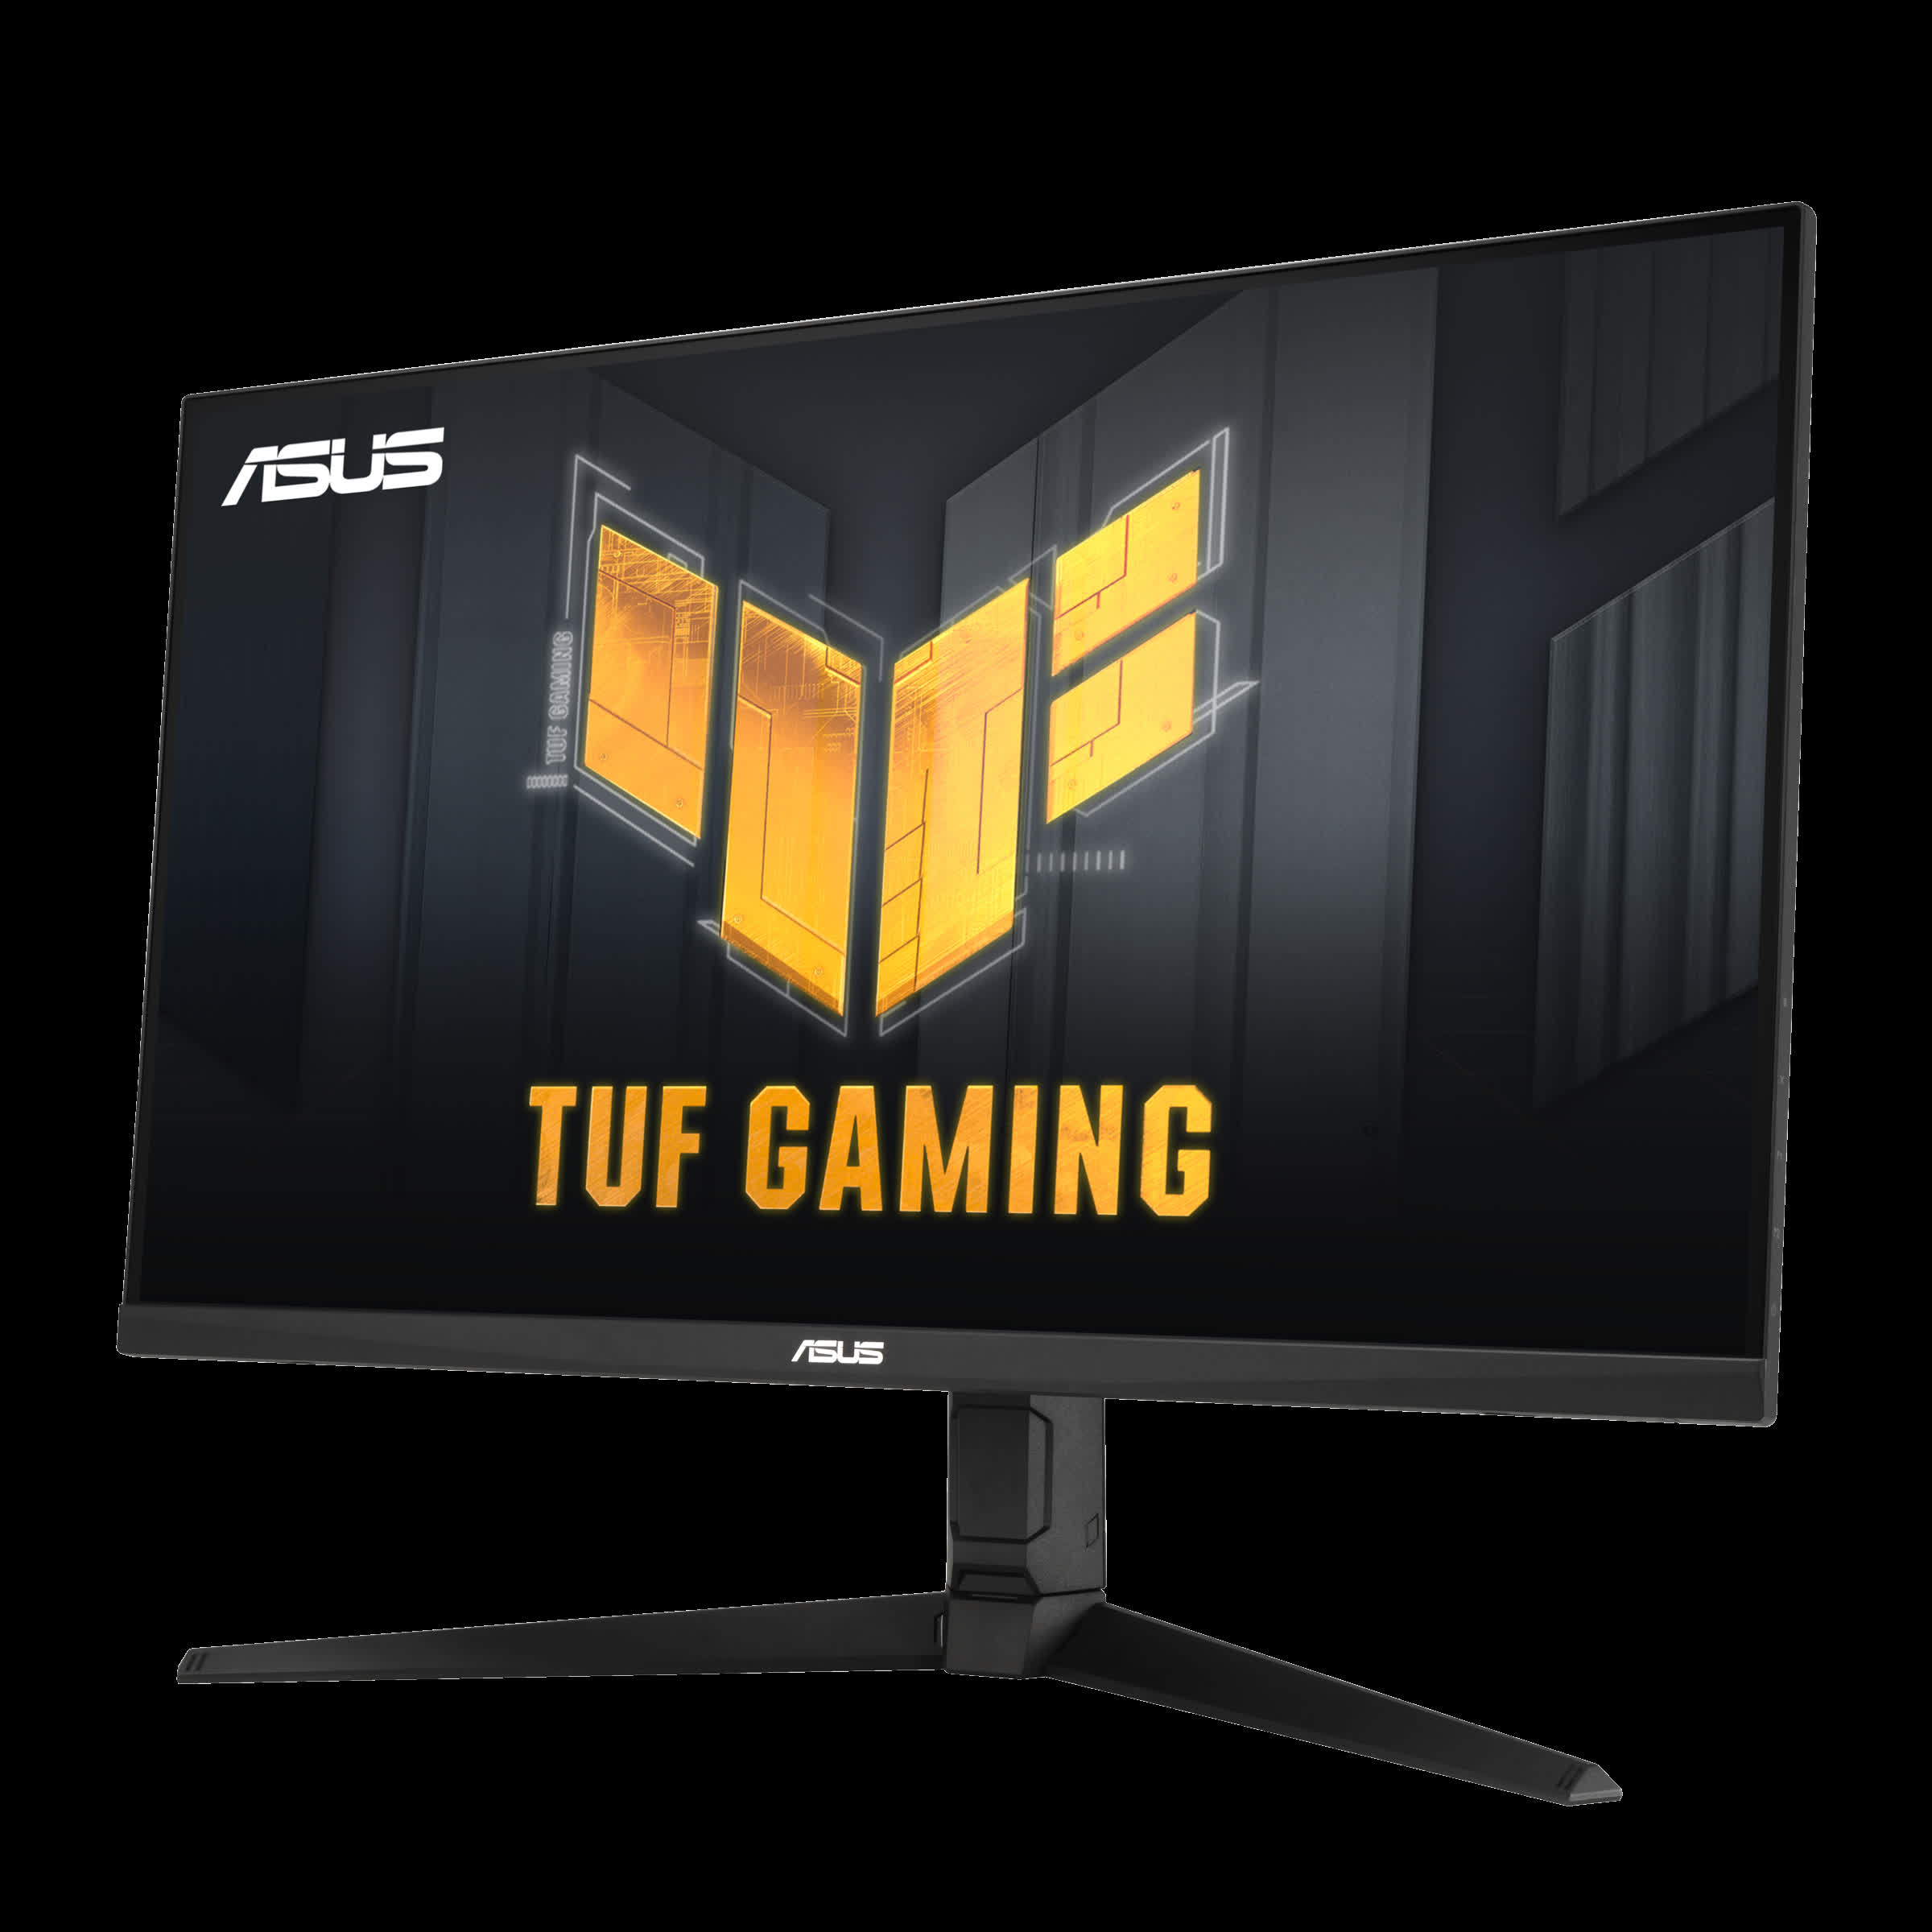 Asus' 32-inch TUF Gaming VG32AQL1A monitor combines a 170Hz refresh rate with QHD resolution